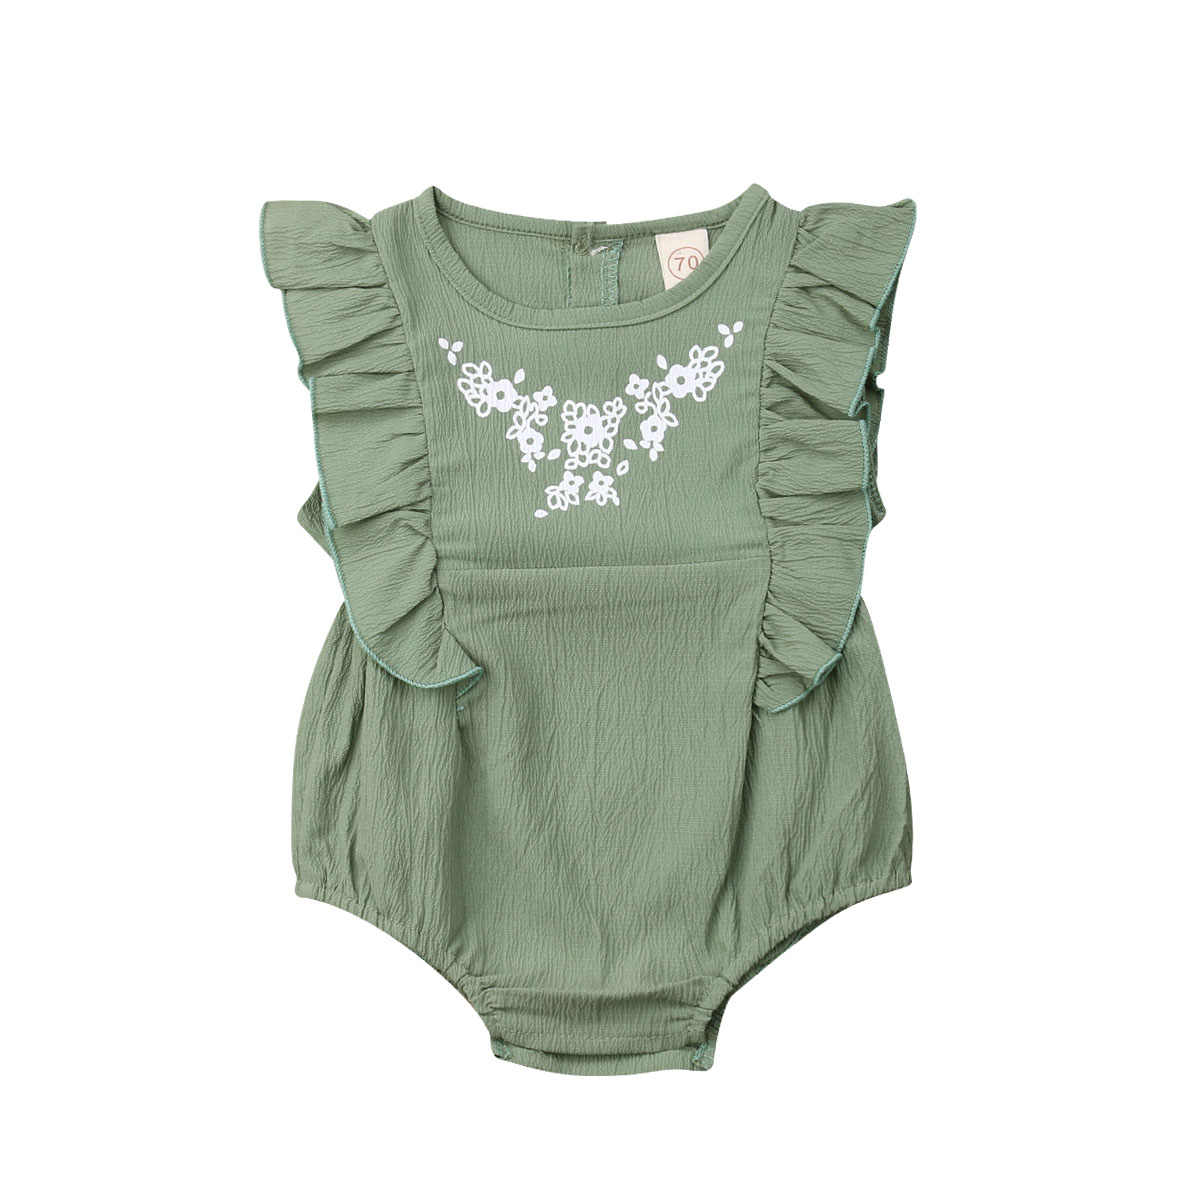 a19c09187e6 Infant Newborn Baby Girls Flower Clothing Ruffles Baby Rompers Vintage  Green Jumpsuit Baby Girl Costumes